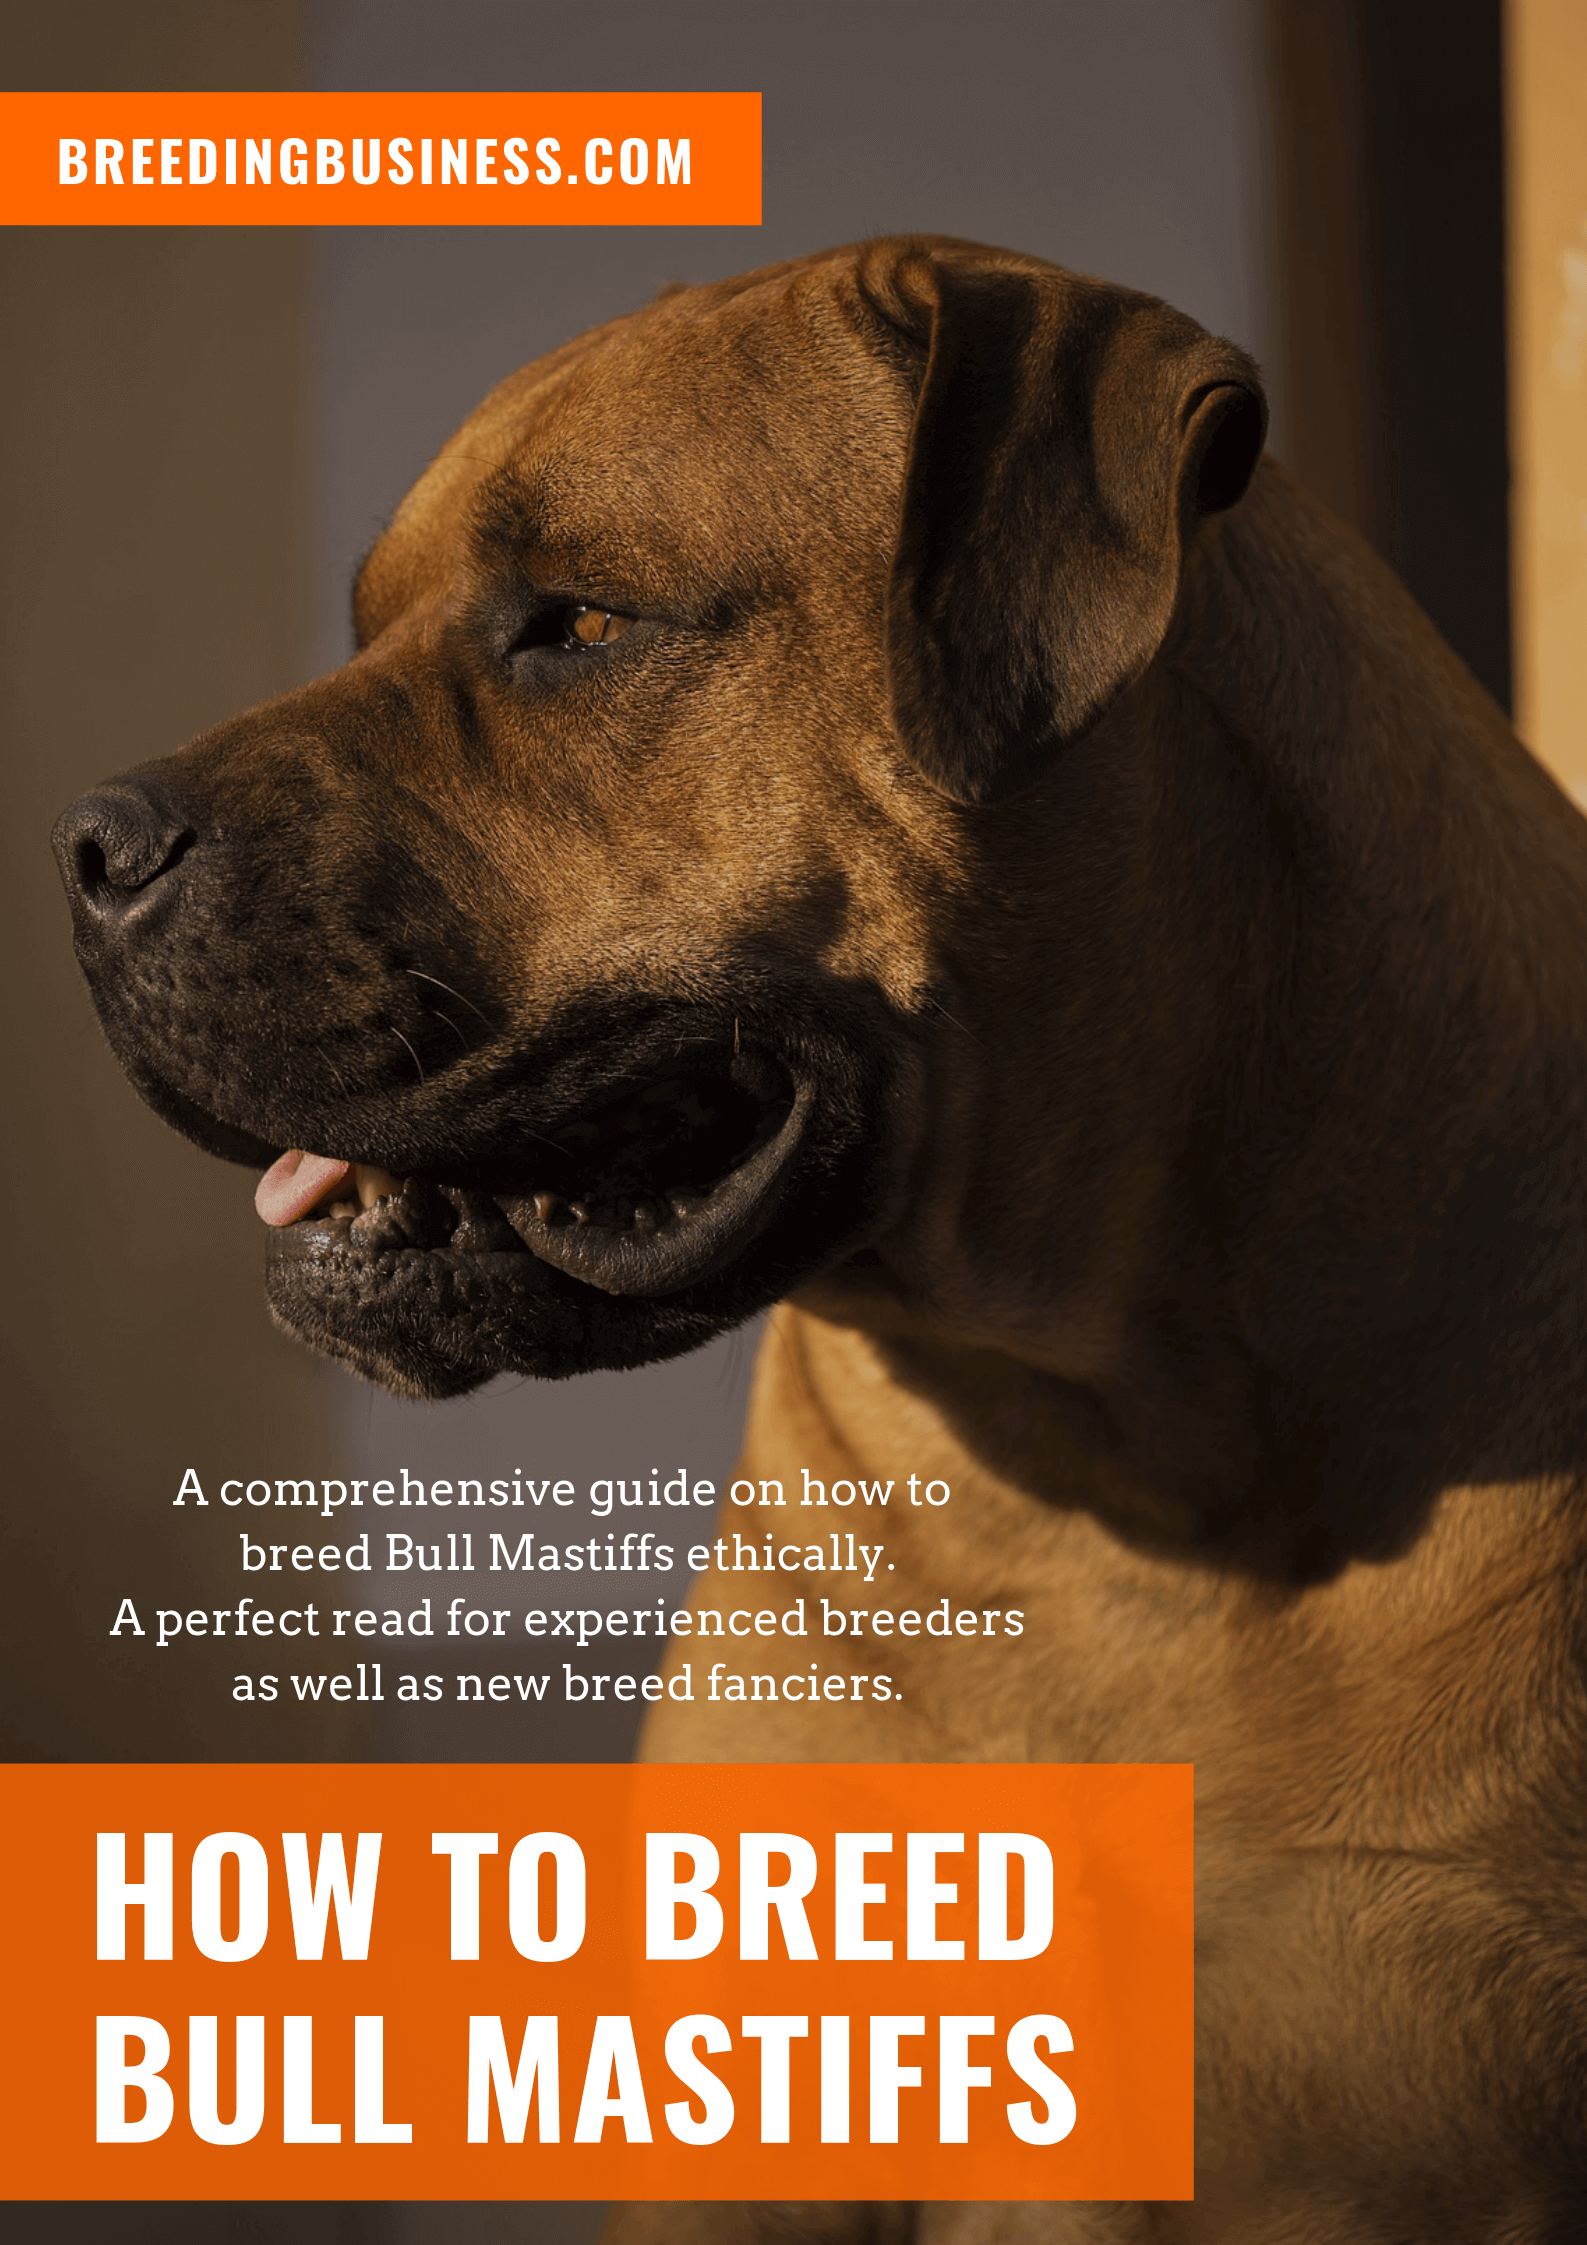 breeding Bull Mastiffs